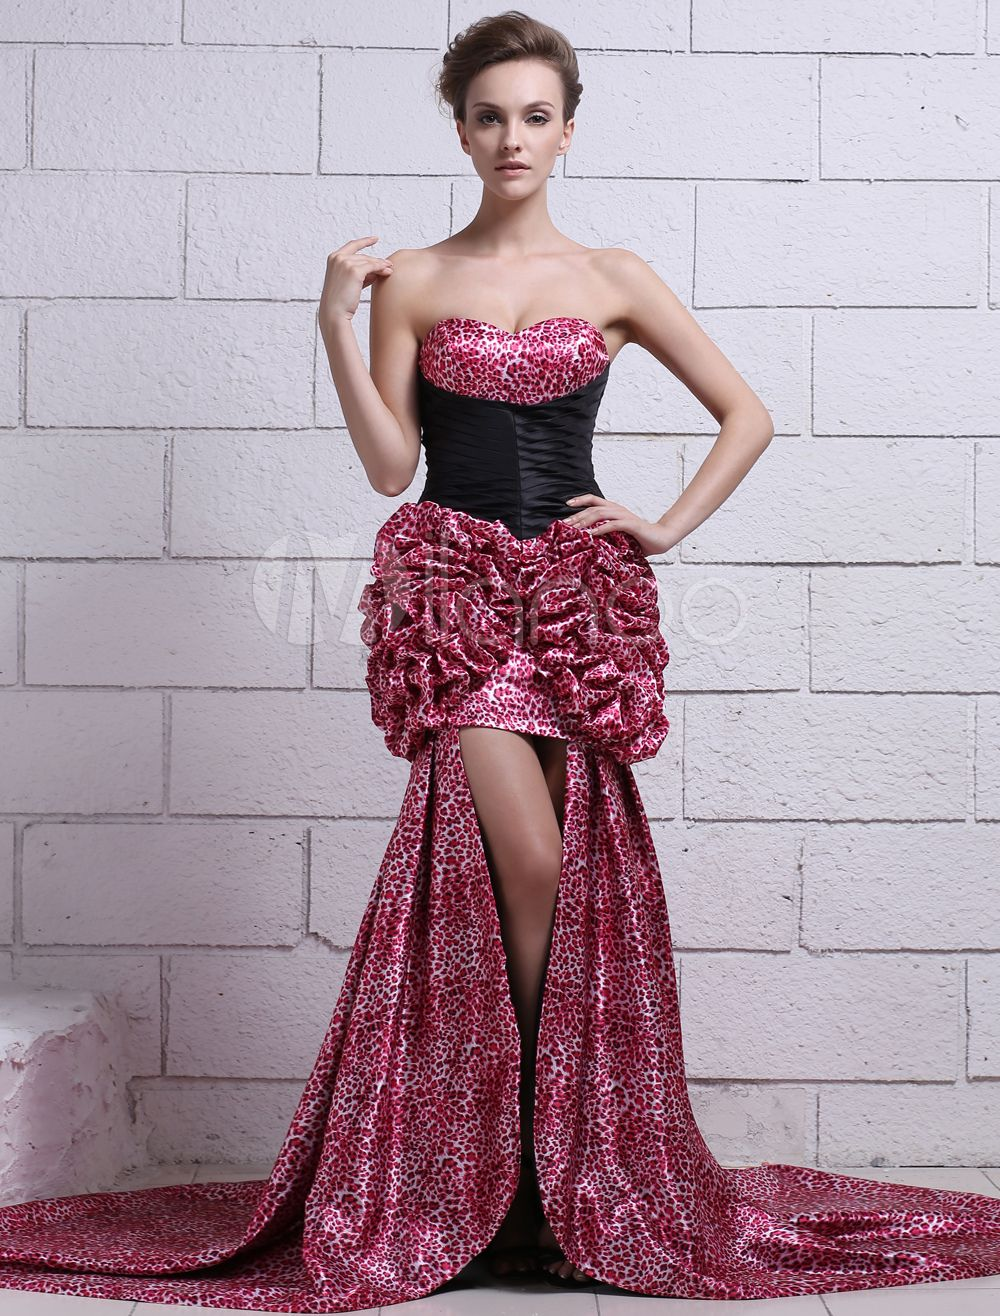 ec403363b815 Satin Prom Dress Hot Pink Sweetheart Homecoming Dress Leopard Print  Strapless Slim fit Ruched Party Dress